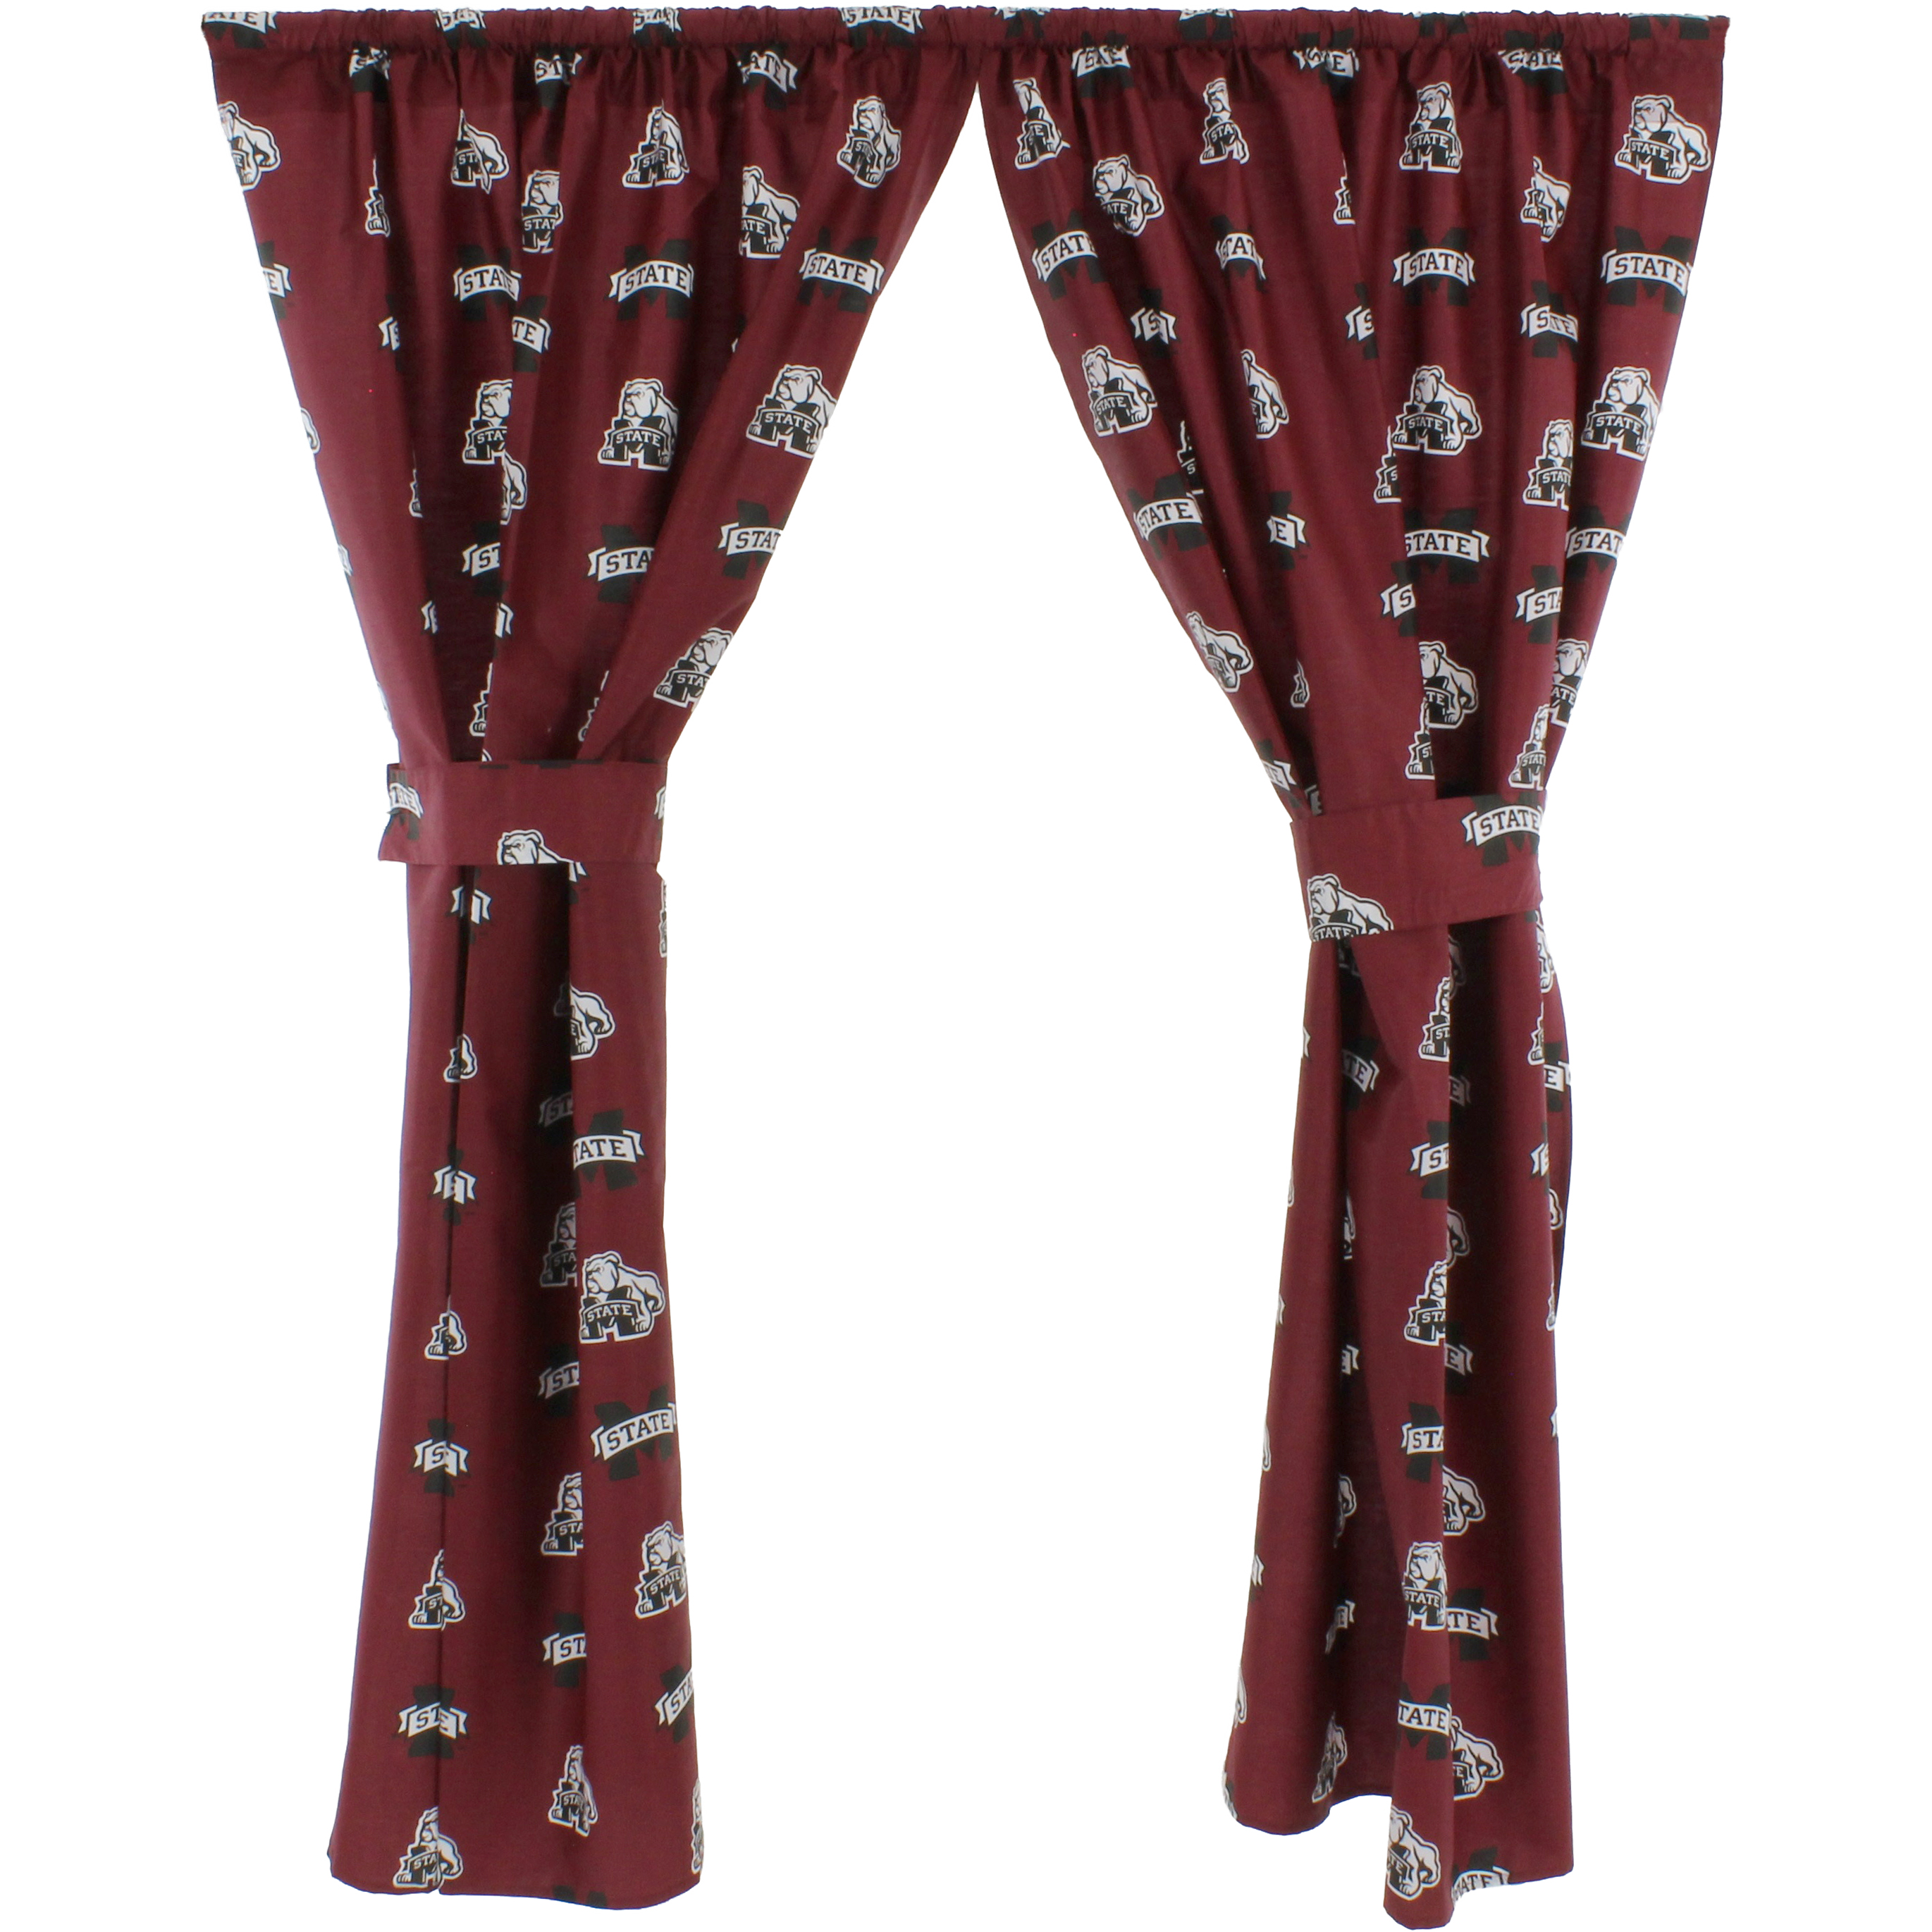 """Mississippi State Bulldogs 100% Cotton, 63"""" Curtain Panels, Set of 2"""